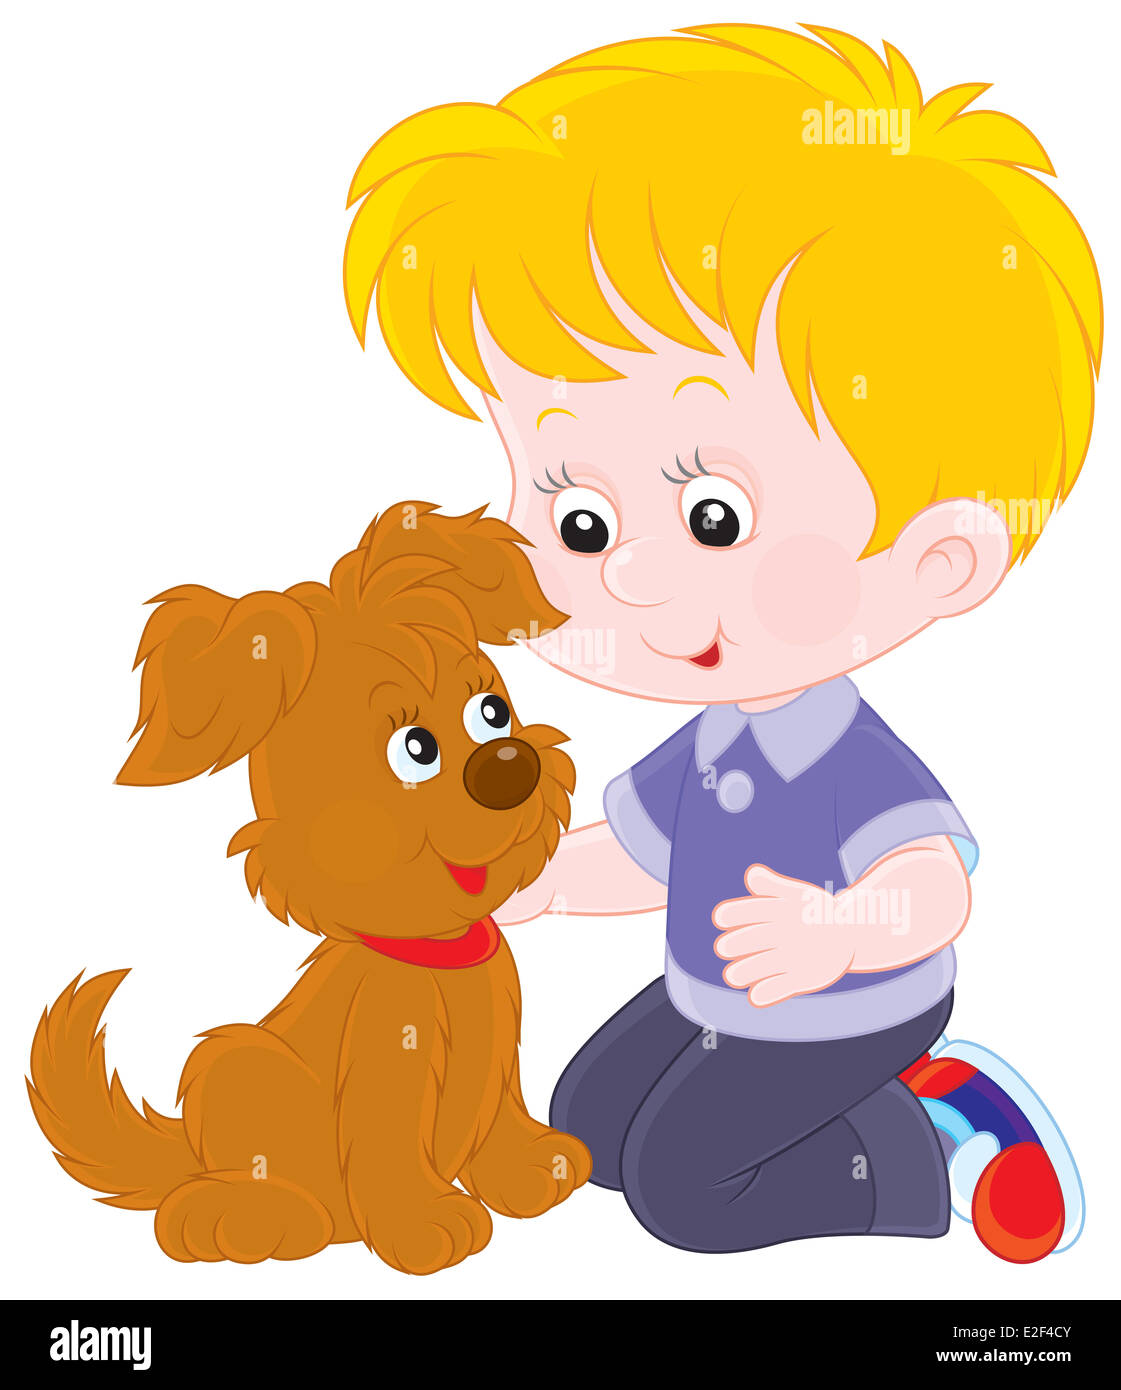 Boy and pup - Stock Image